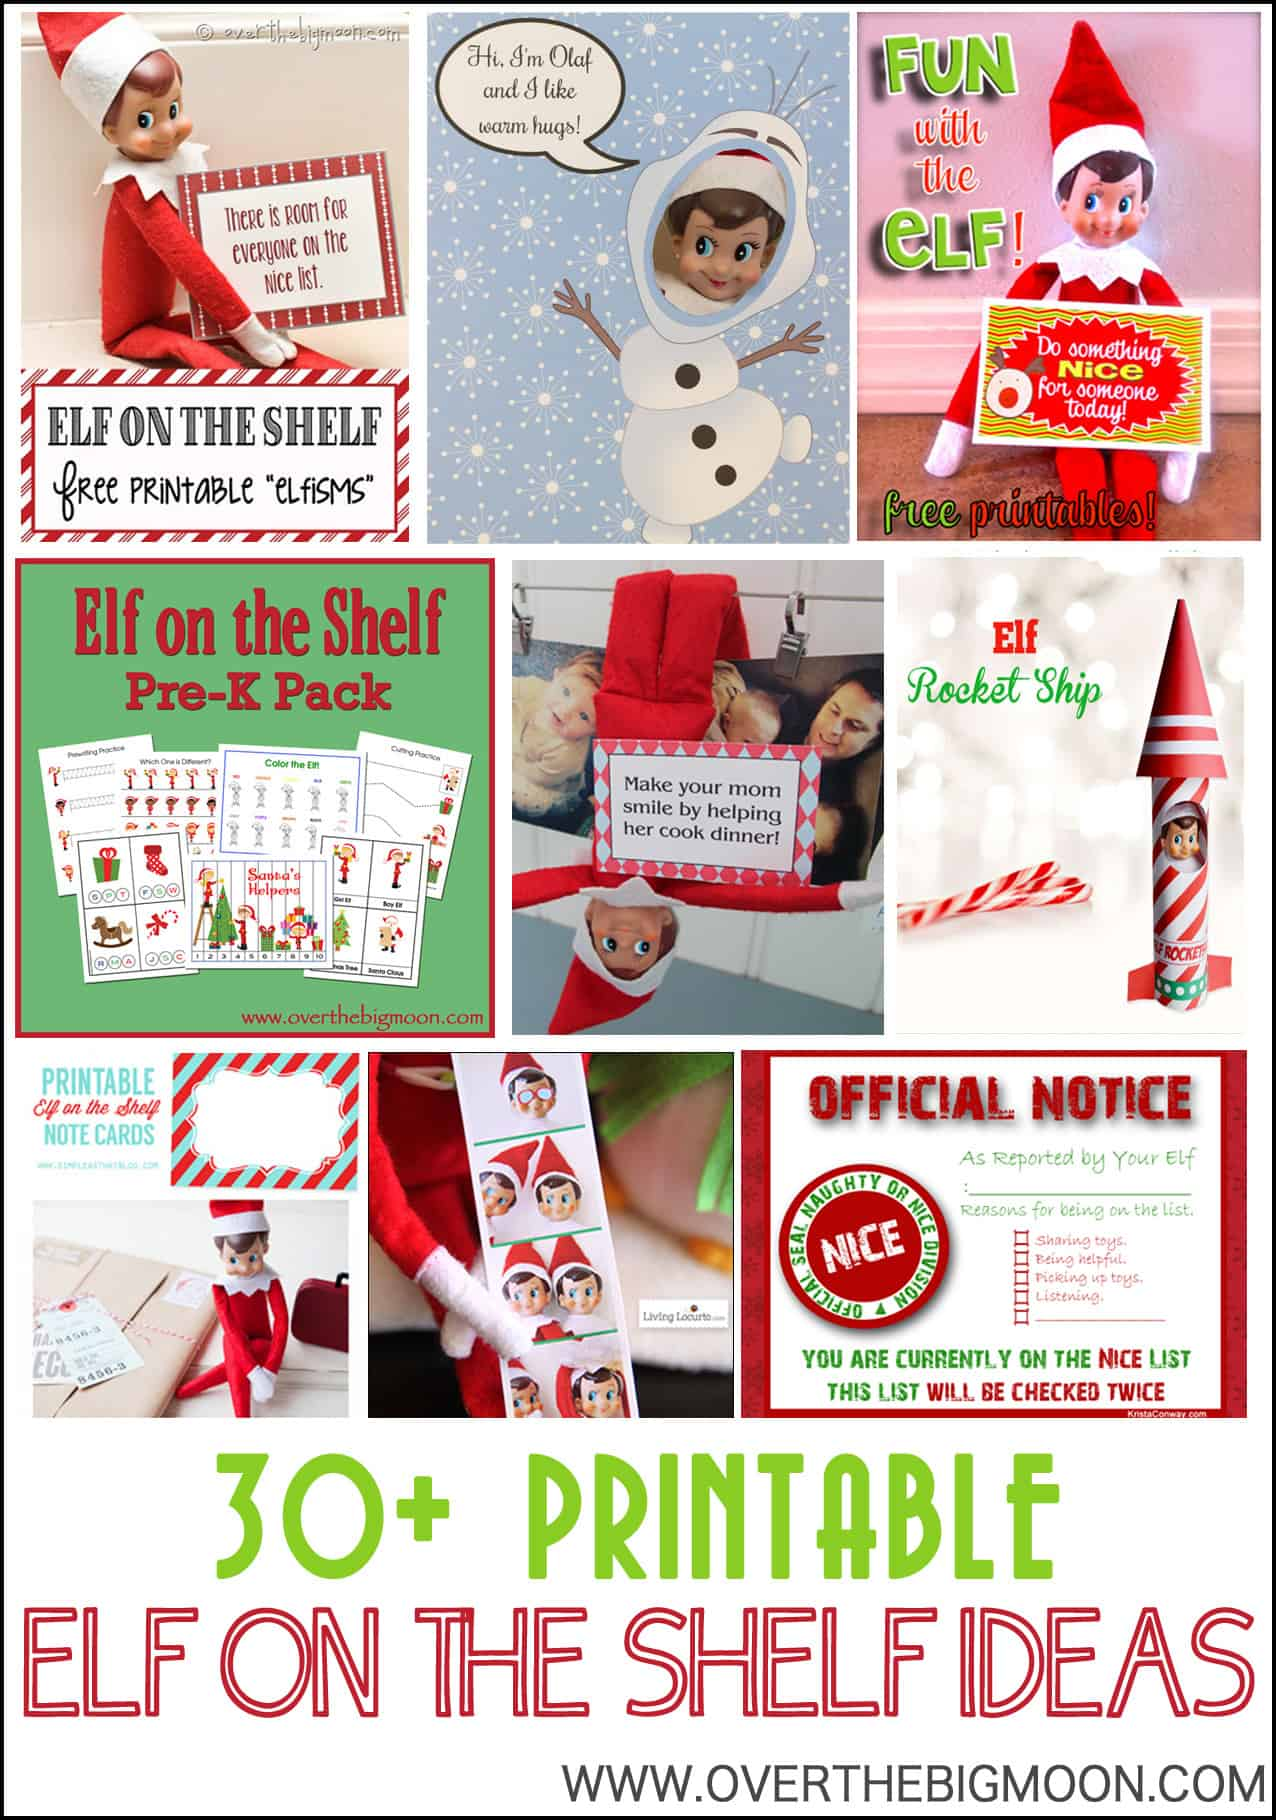 photograph about Elf on the Shelf Kissing Booth Free Printable named 30+ Printable Elf upon the Shelf Recommendations Above The Huge Moon